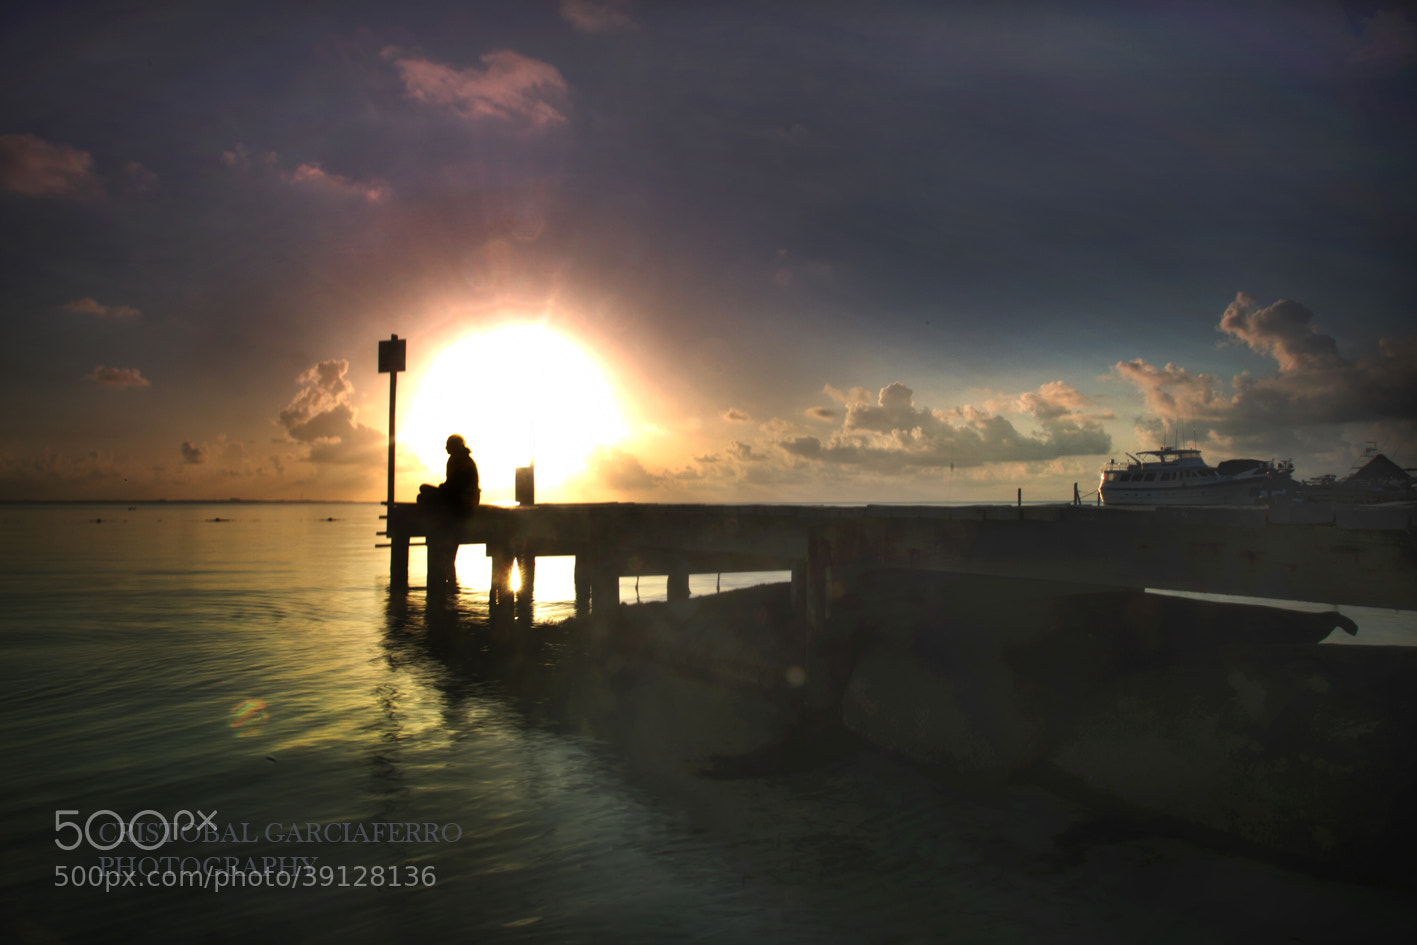 Photograph Lady at sunrise in Cancun by Cristobal Garciaferro Rubio on 500px